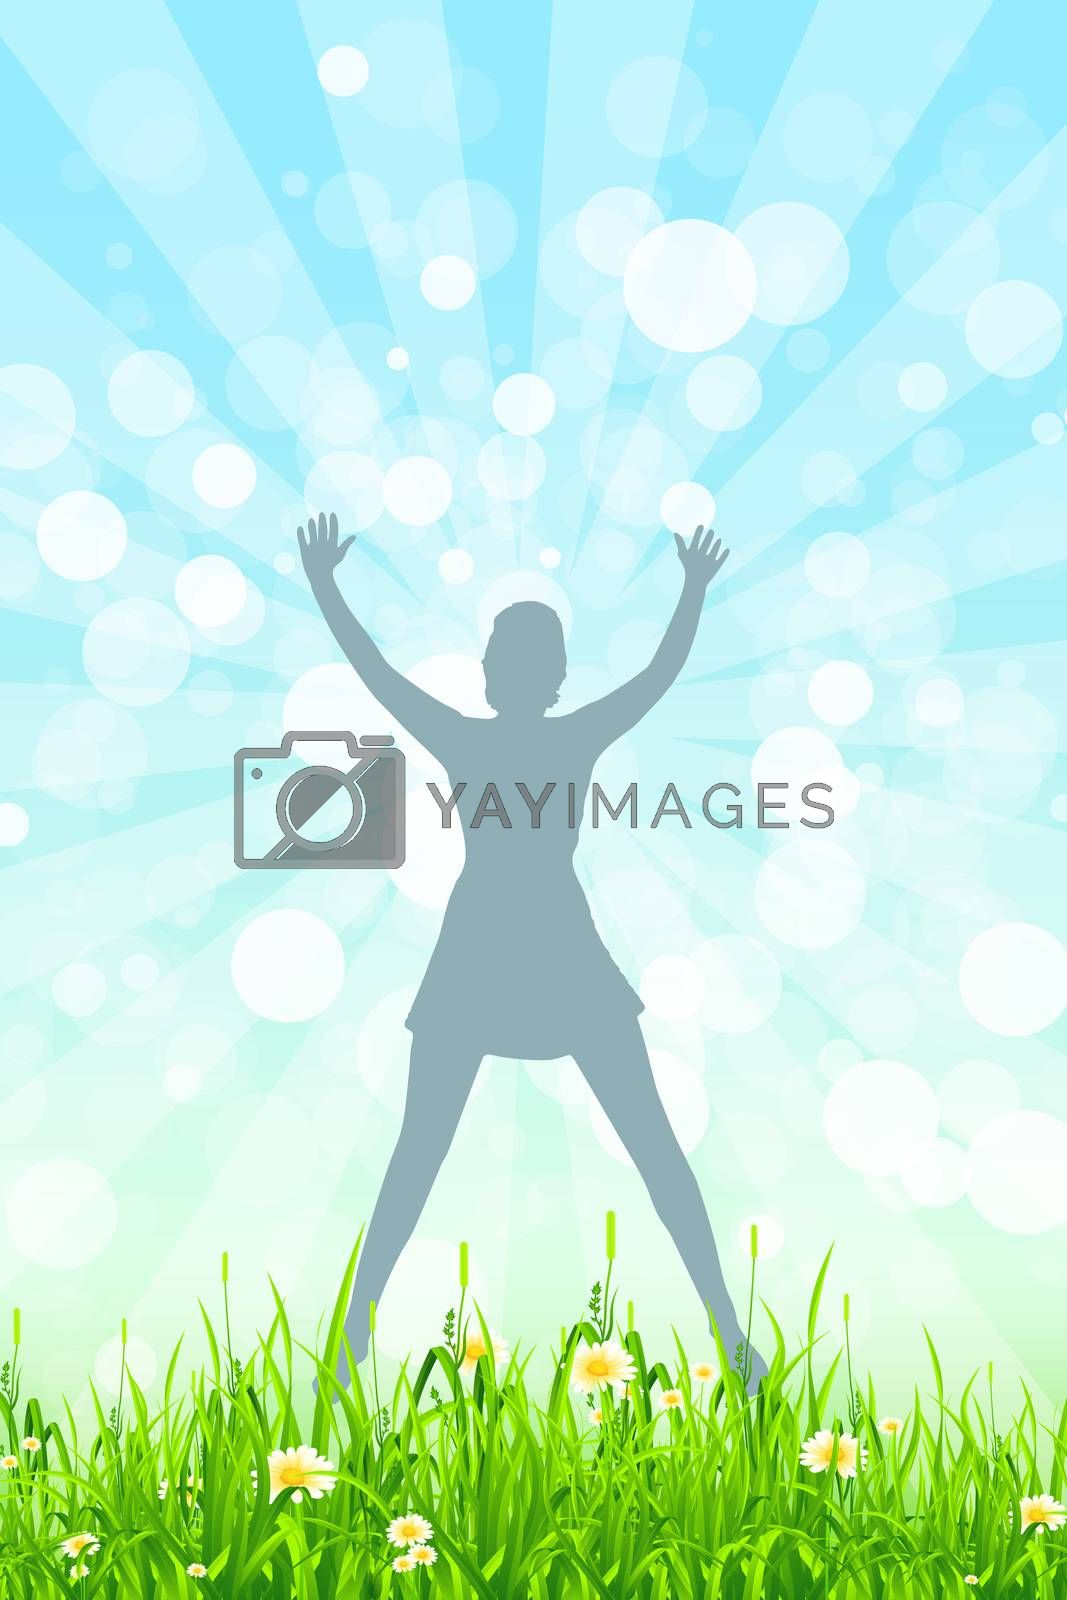 Nature Background with Girl Silhouette in Jump by WaD